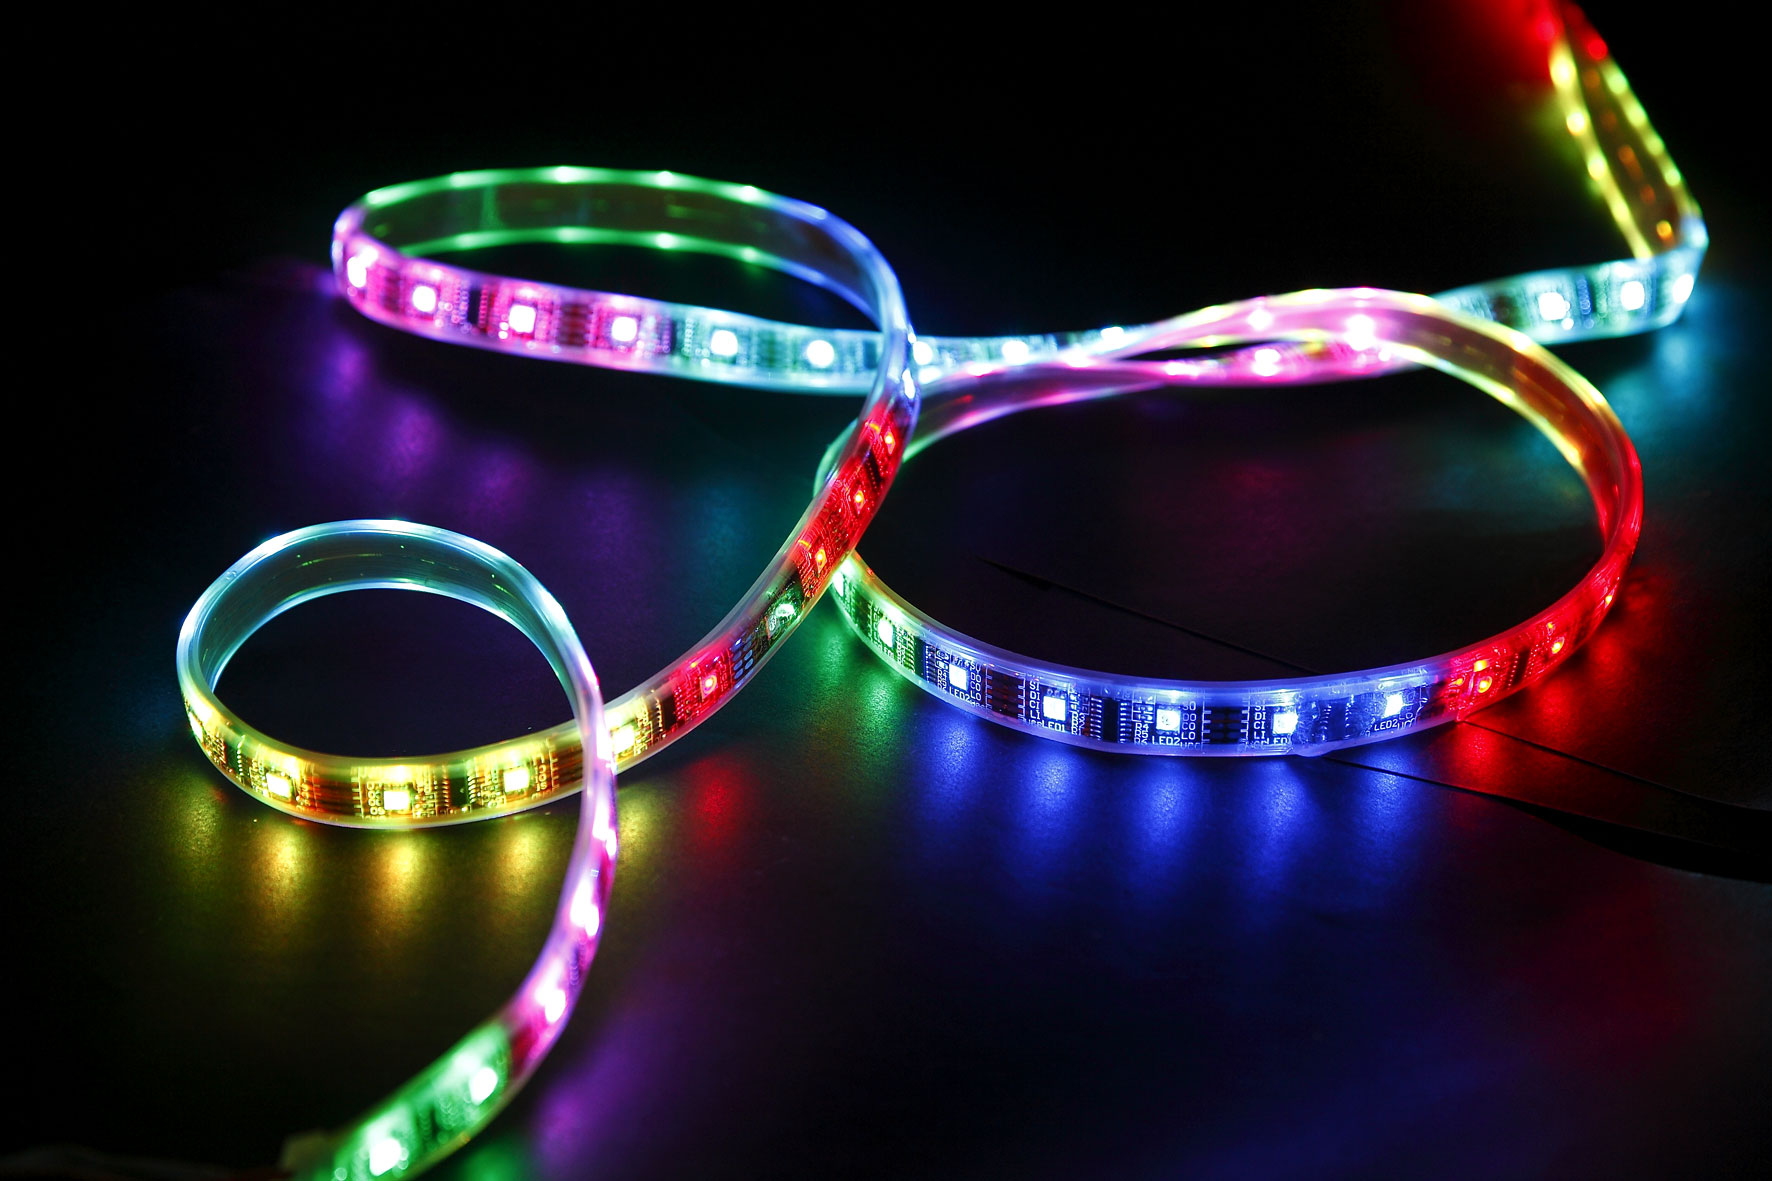 Made for Home DIY: LED Strip Light Ideas to Brighten Your Life